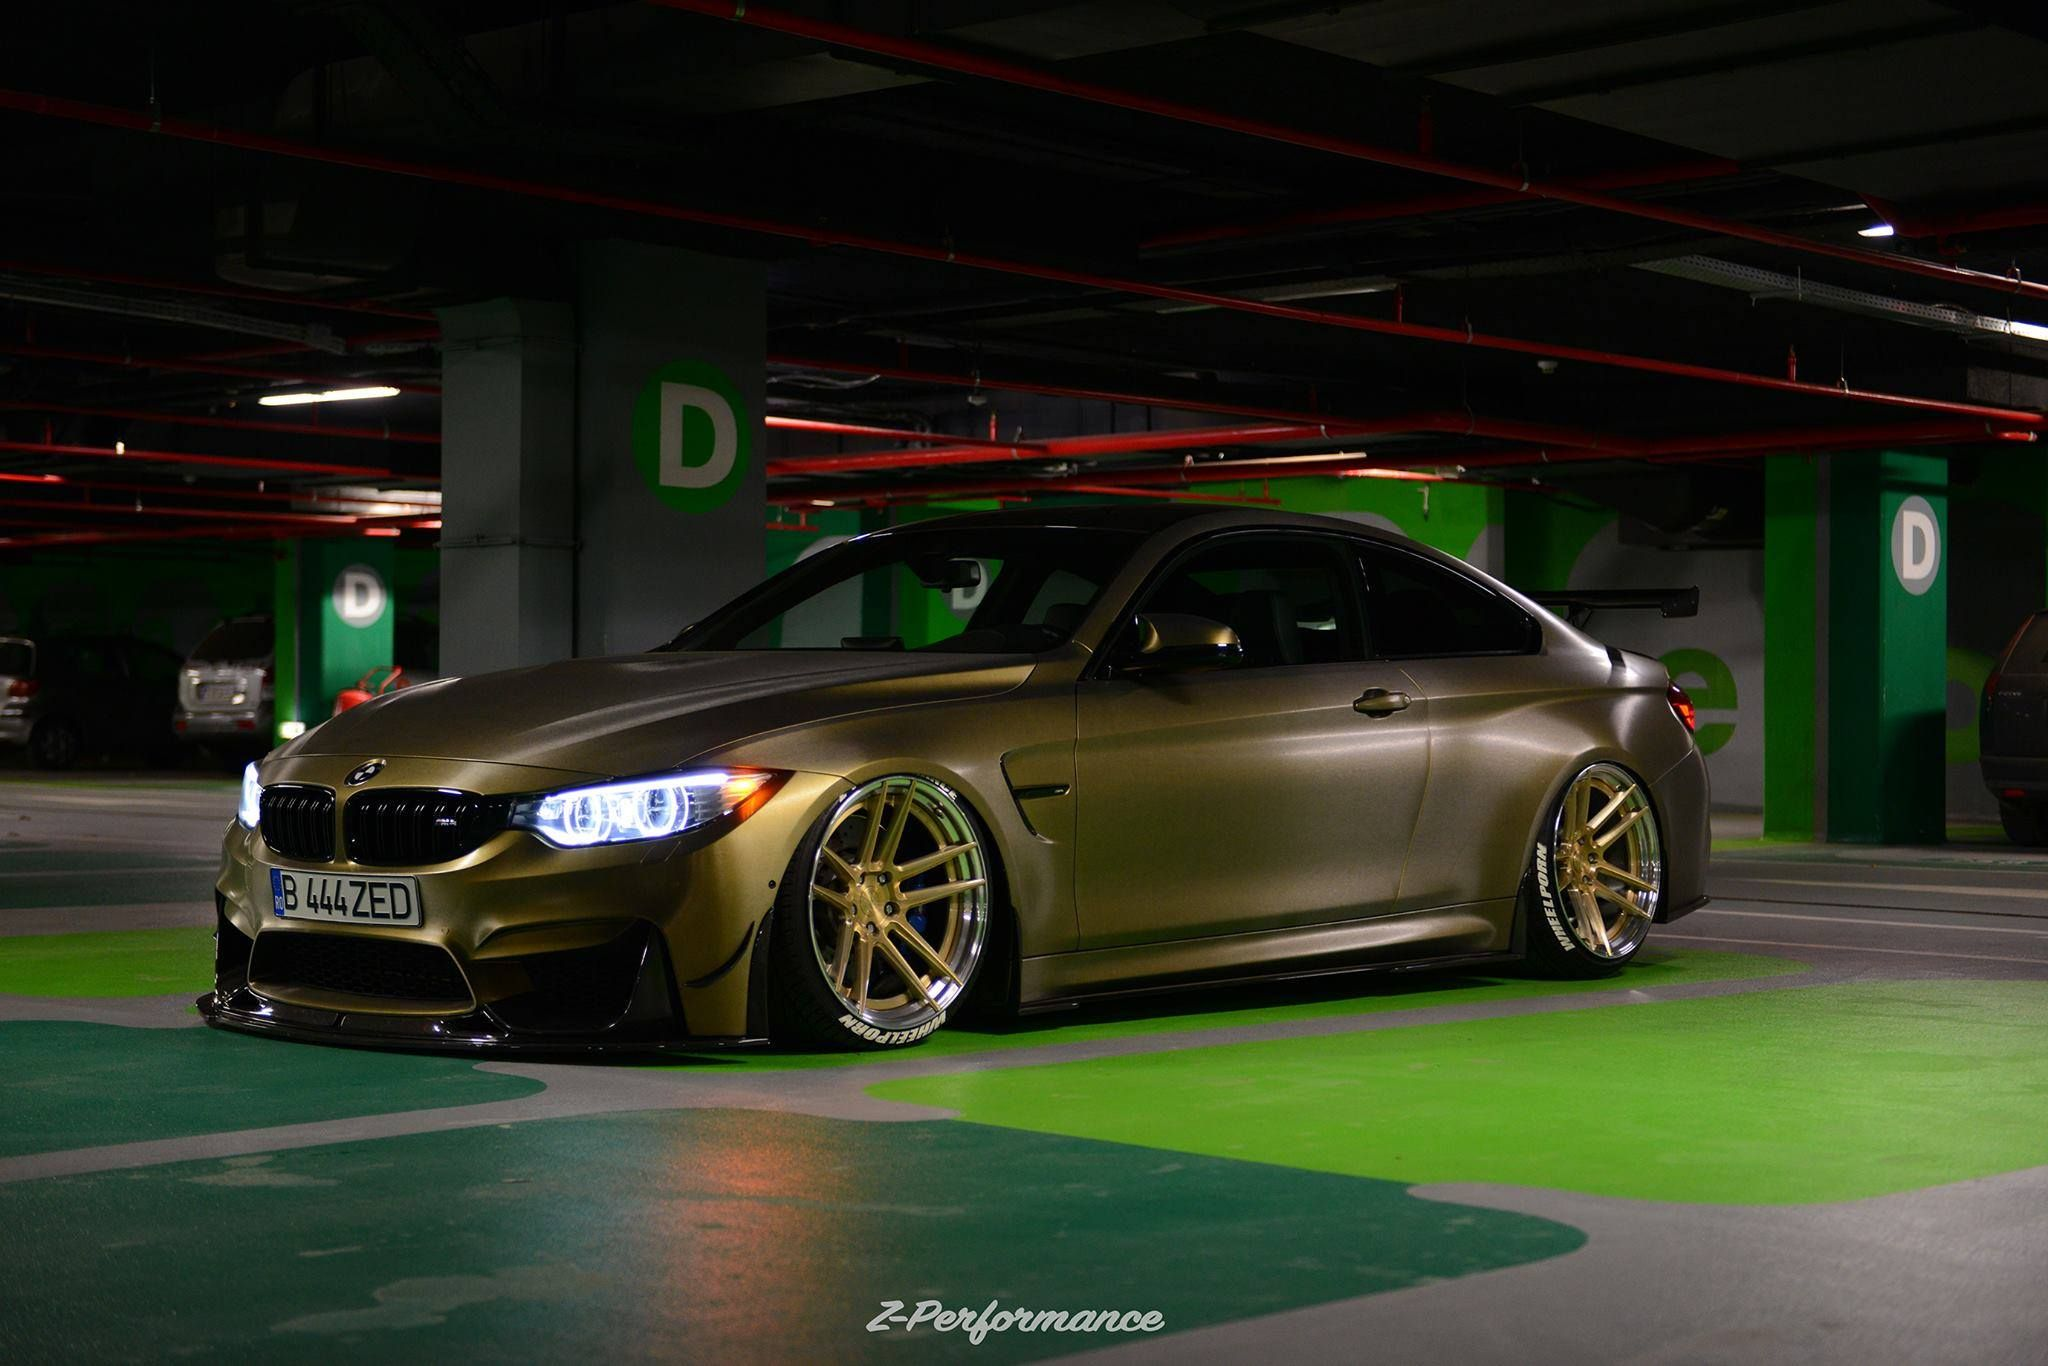 bmw m4 sick tuning germany cars pinterest bmw m4 bmw and cars. Black Bedroom Furniture Sets. Home Design Ideas